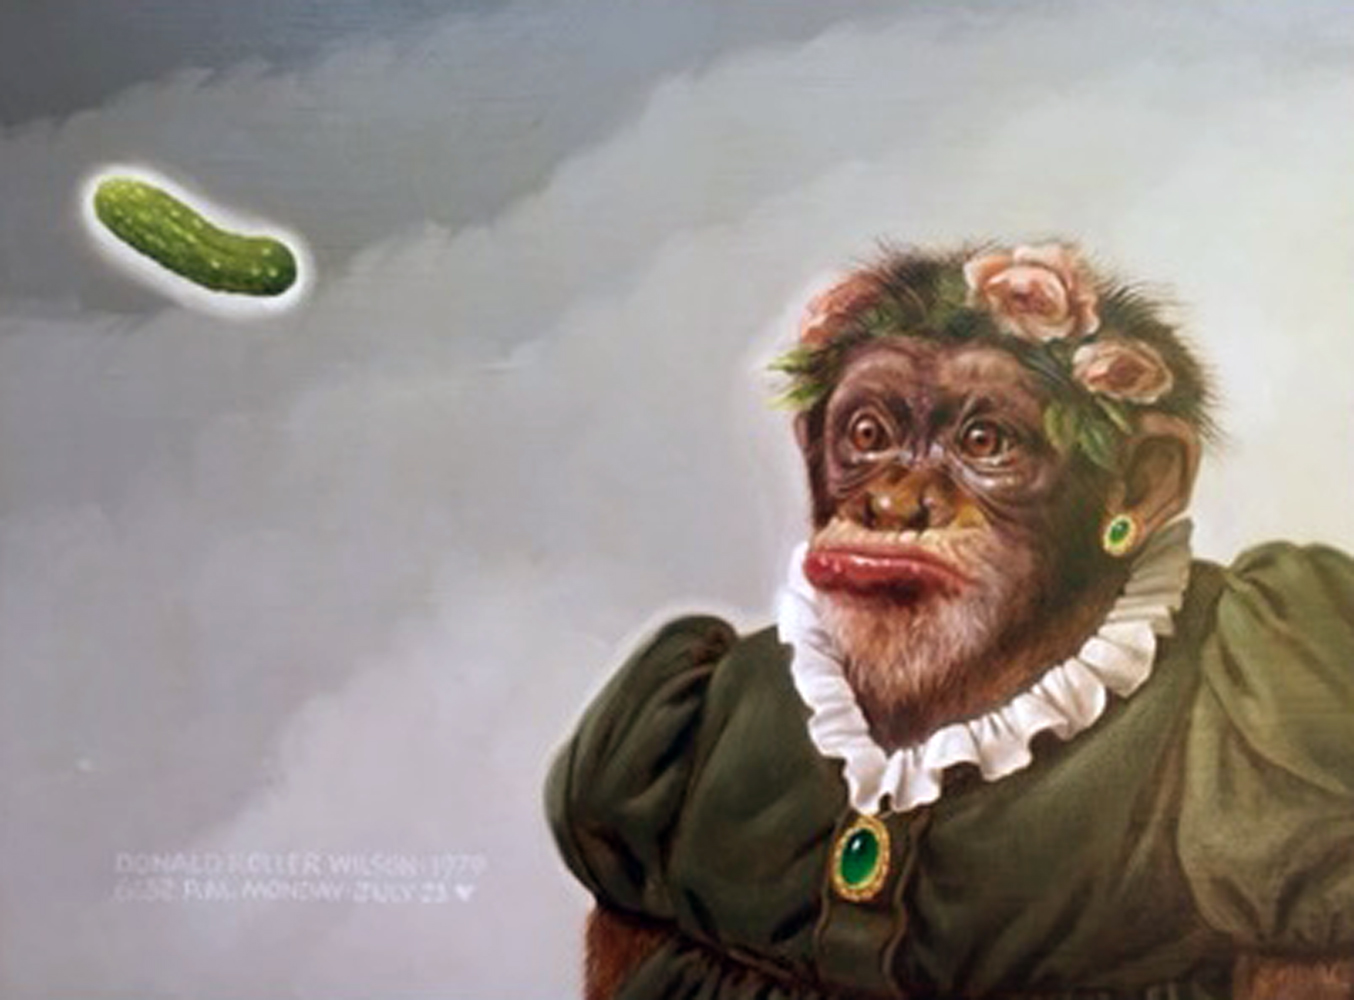 Betty is Disgusted By the Pickle 1979 16x20 by Donald Roller Wilson